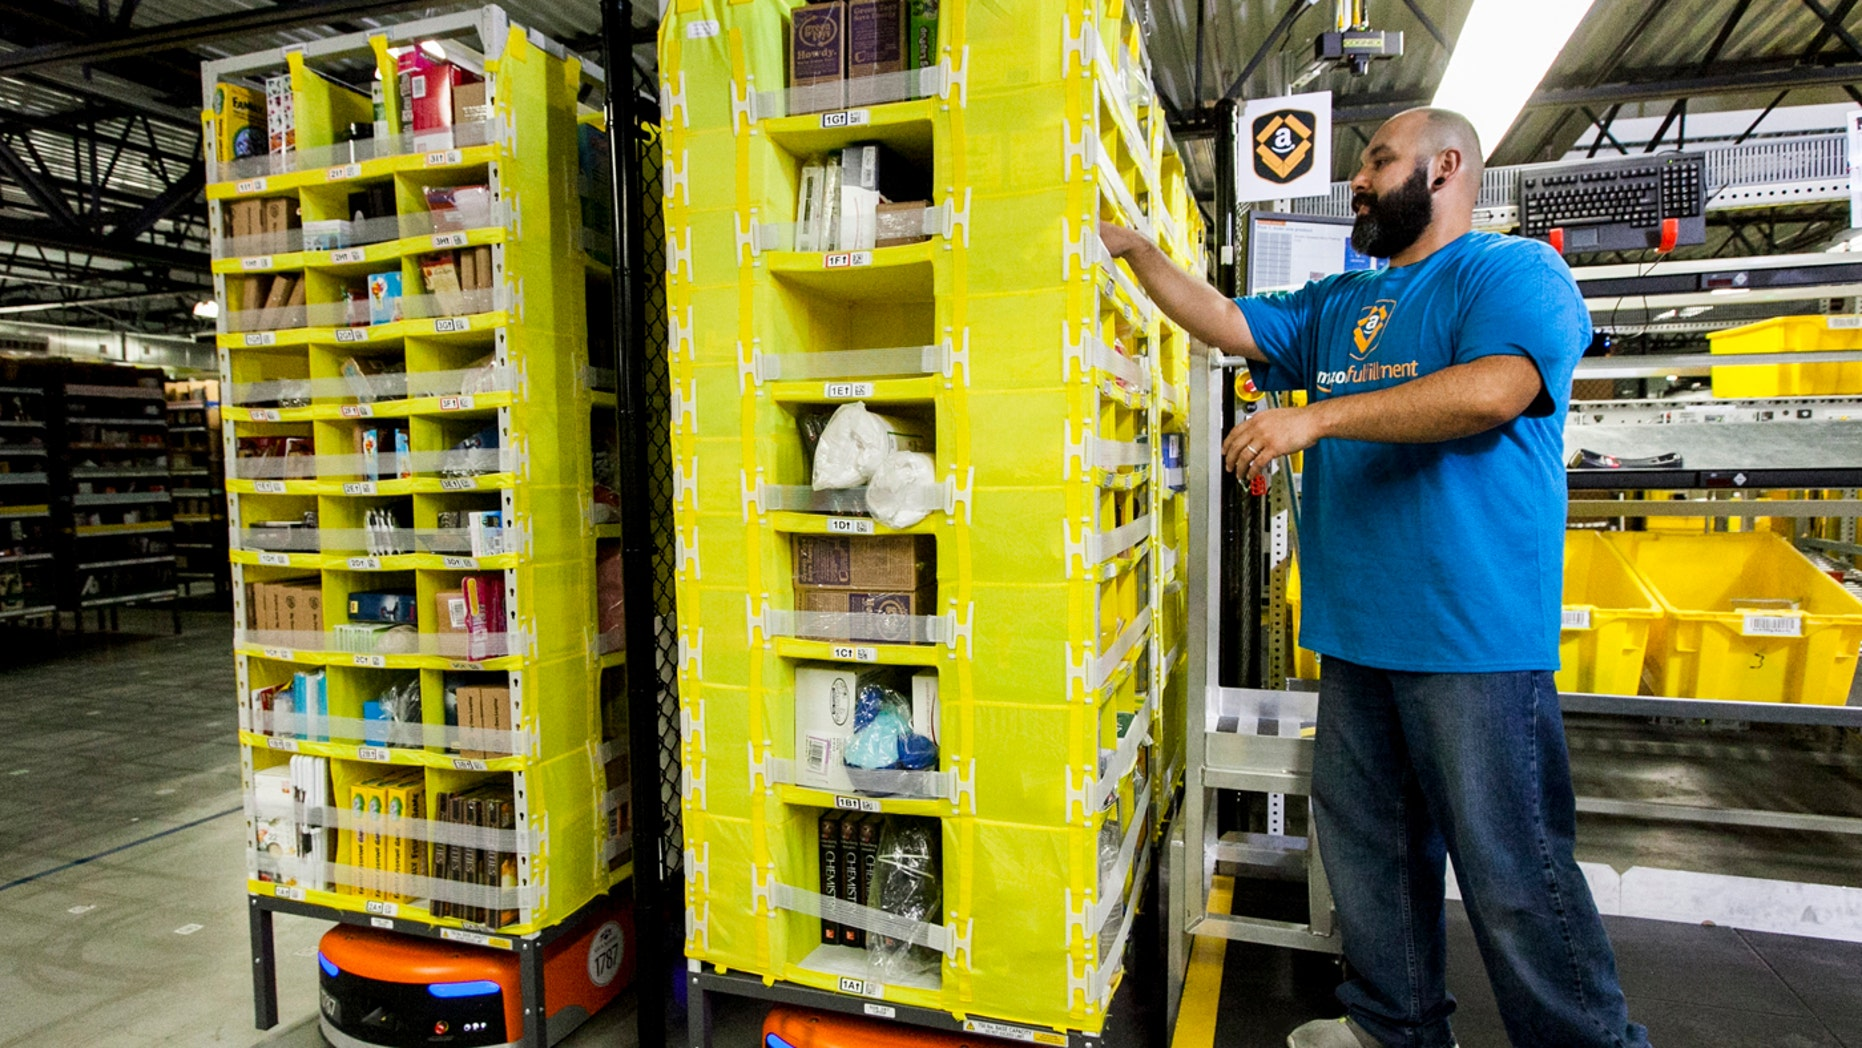 An Amazon fulfillment center employee is seen above, working with a robot.